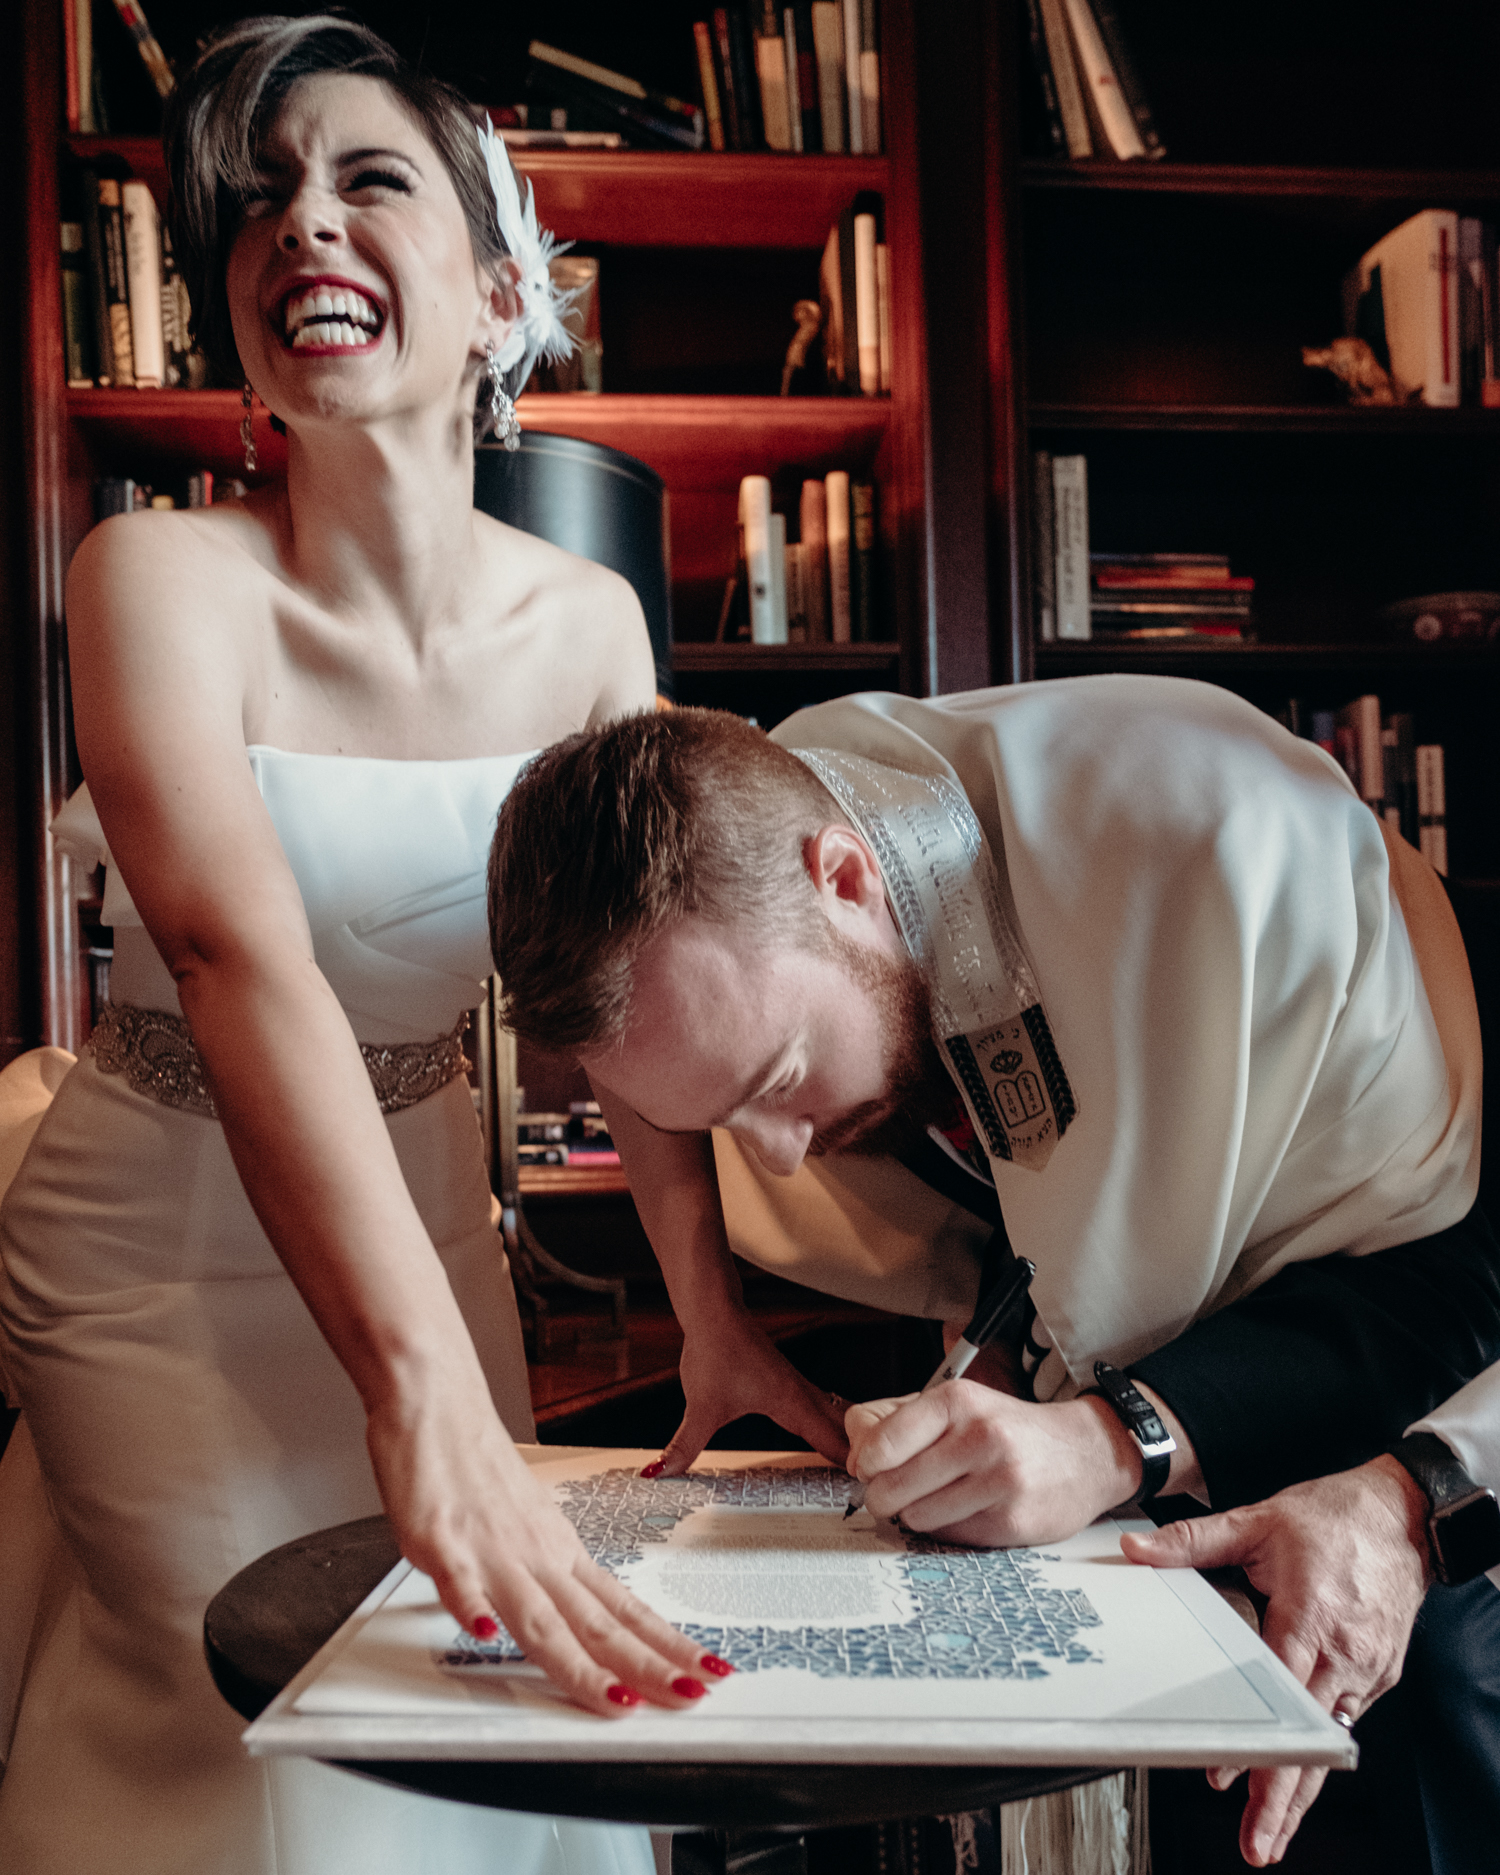 Bride smiles big as groom signs the ketubah at Virginia jewish wedding